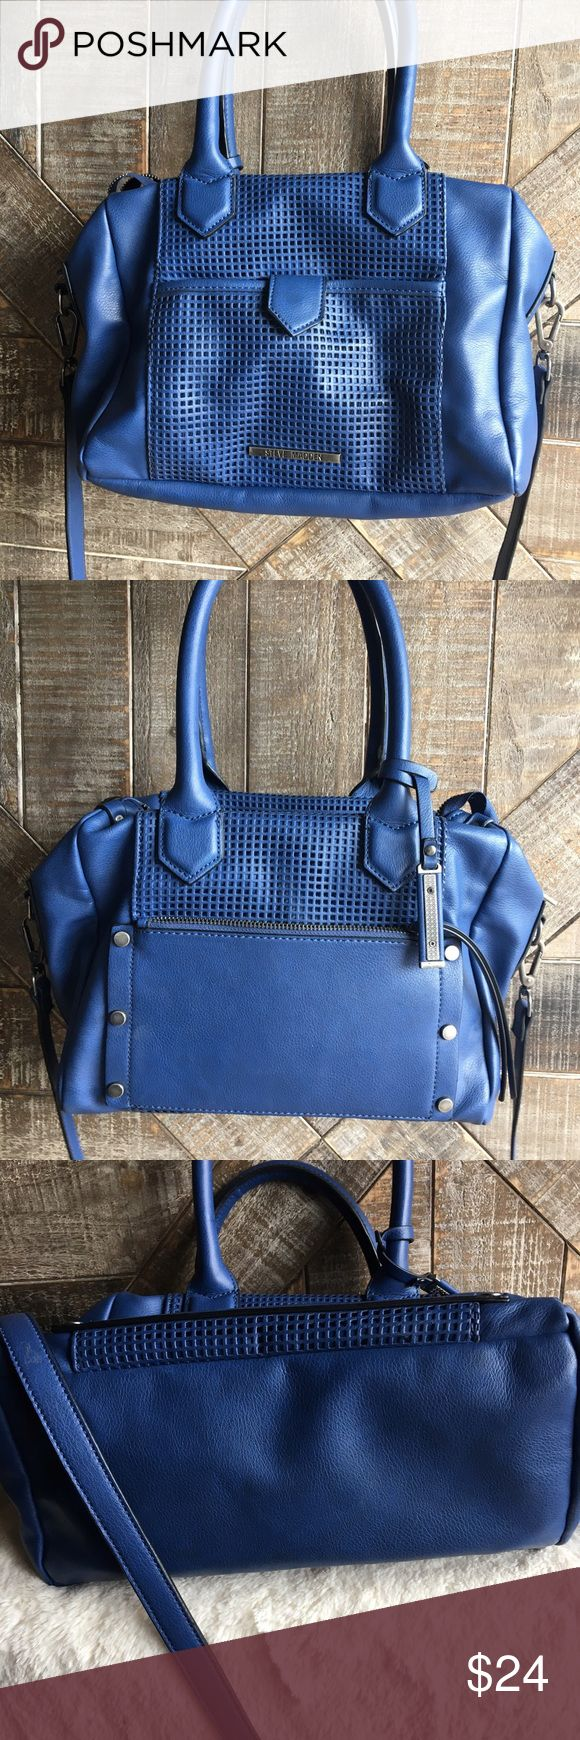 Blue Steve Madden Handbag Blue Steve Madden Handbag in good used condition. No trades, reasonable offers through offer button. Steve Madden Bags Shoulder Bags